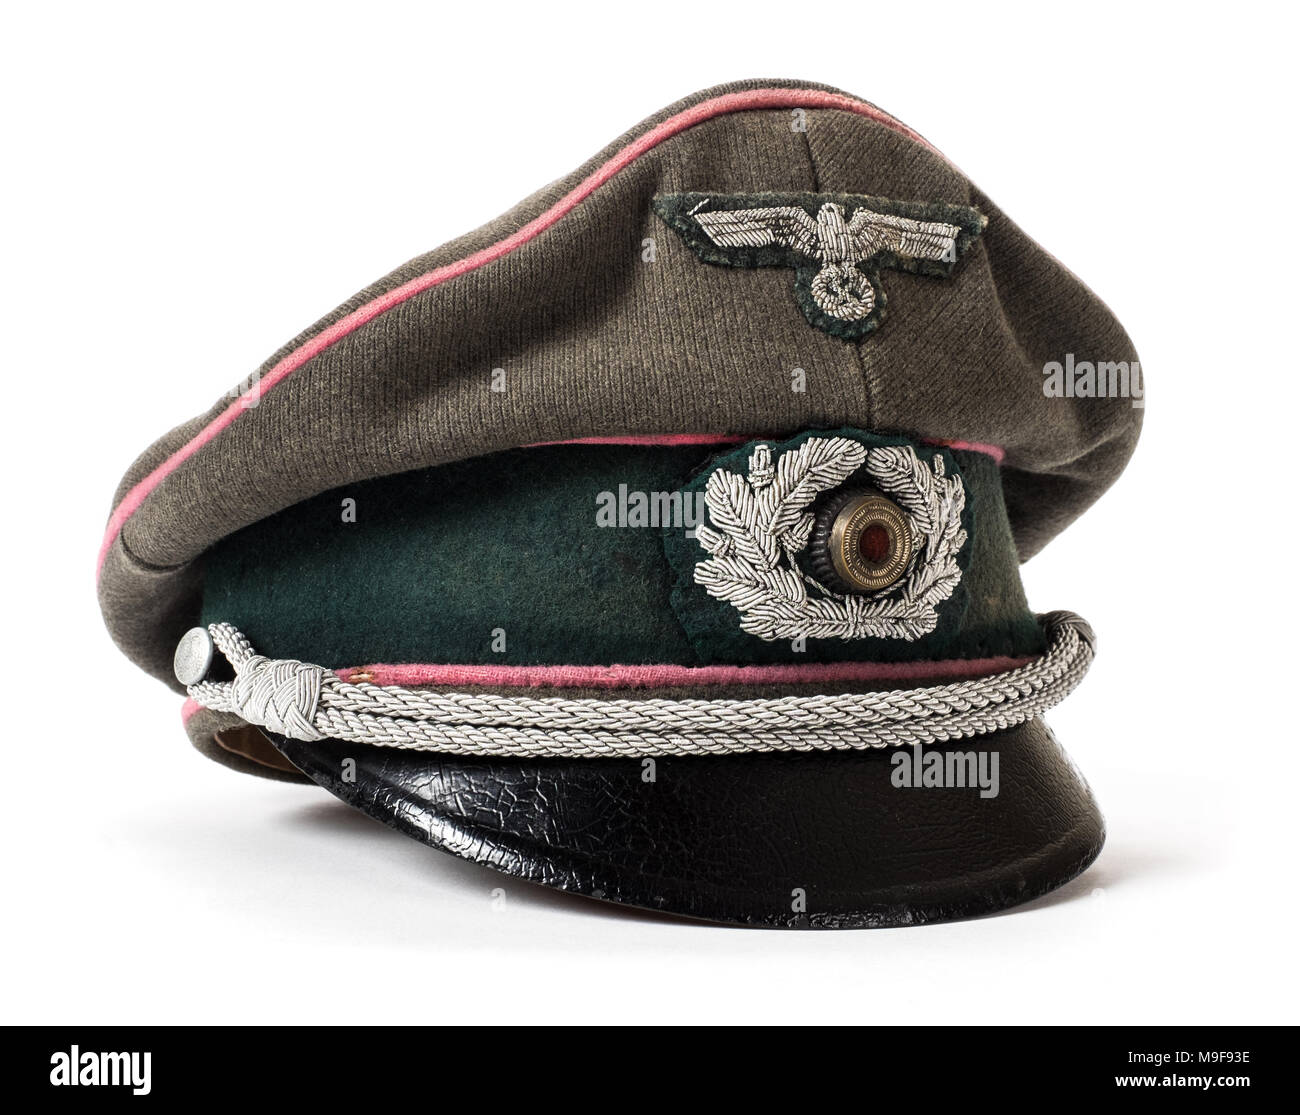 WW2 German Third Reich Panzer Officer's visor with cloth insignia and Wermacht eagle - Stock Image